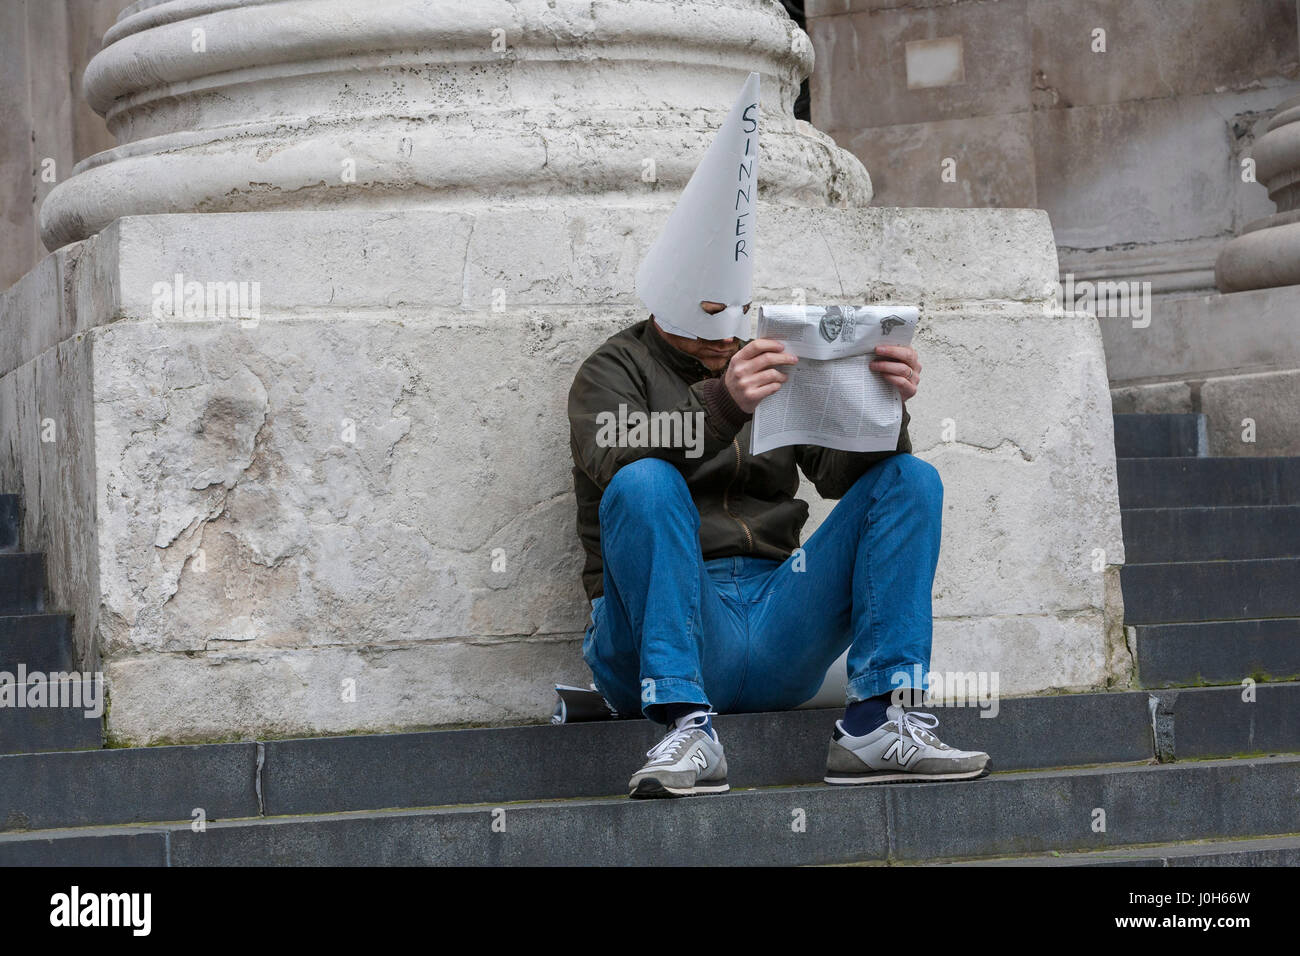 London, UK. 13th Apr, 2017. A solitary man sits on the steps of St. Paul's Cathedral reading a newspaper wearing - Stock Image